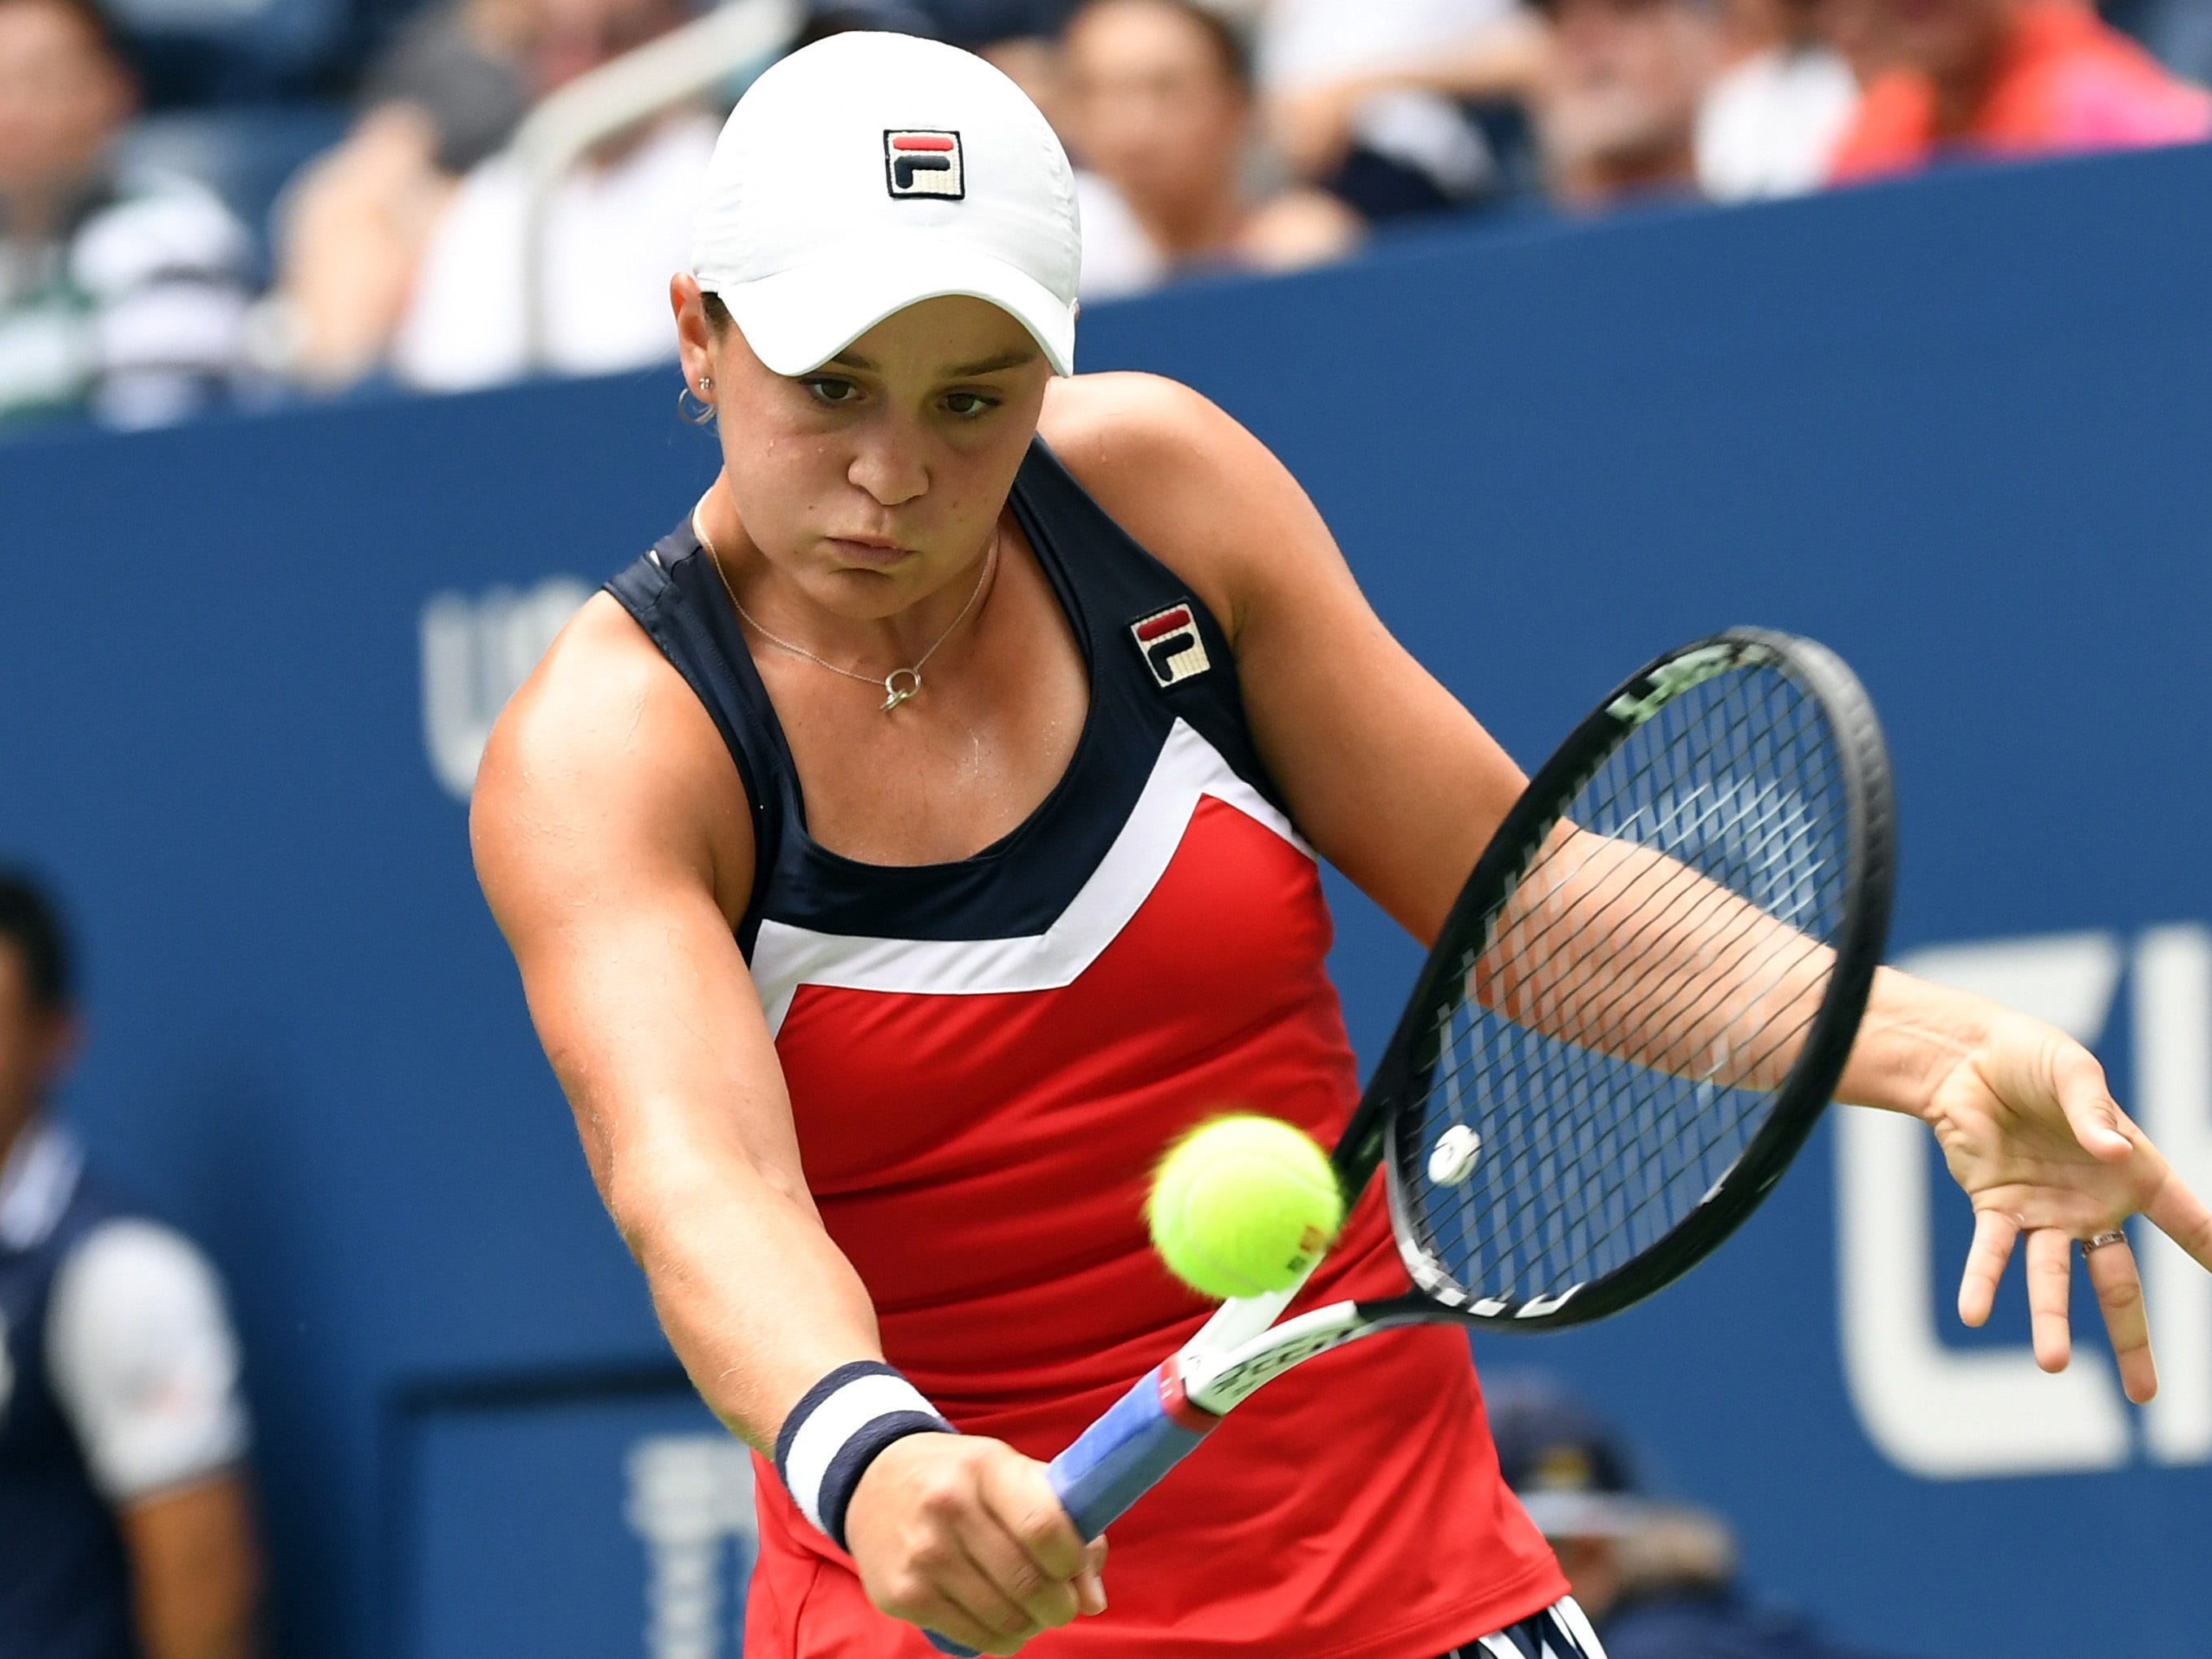 Ashleigh Barty plays a backhand return against Karolina Pliskova.